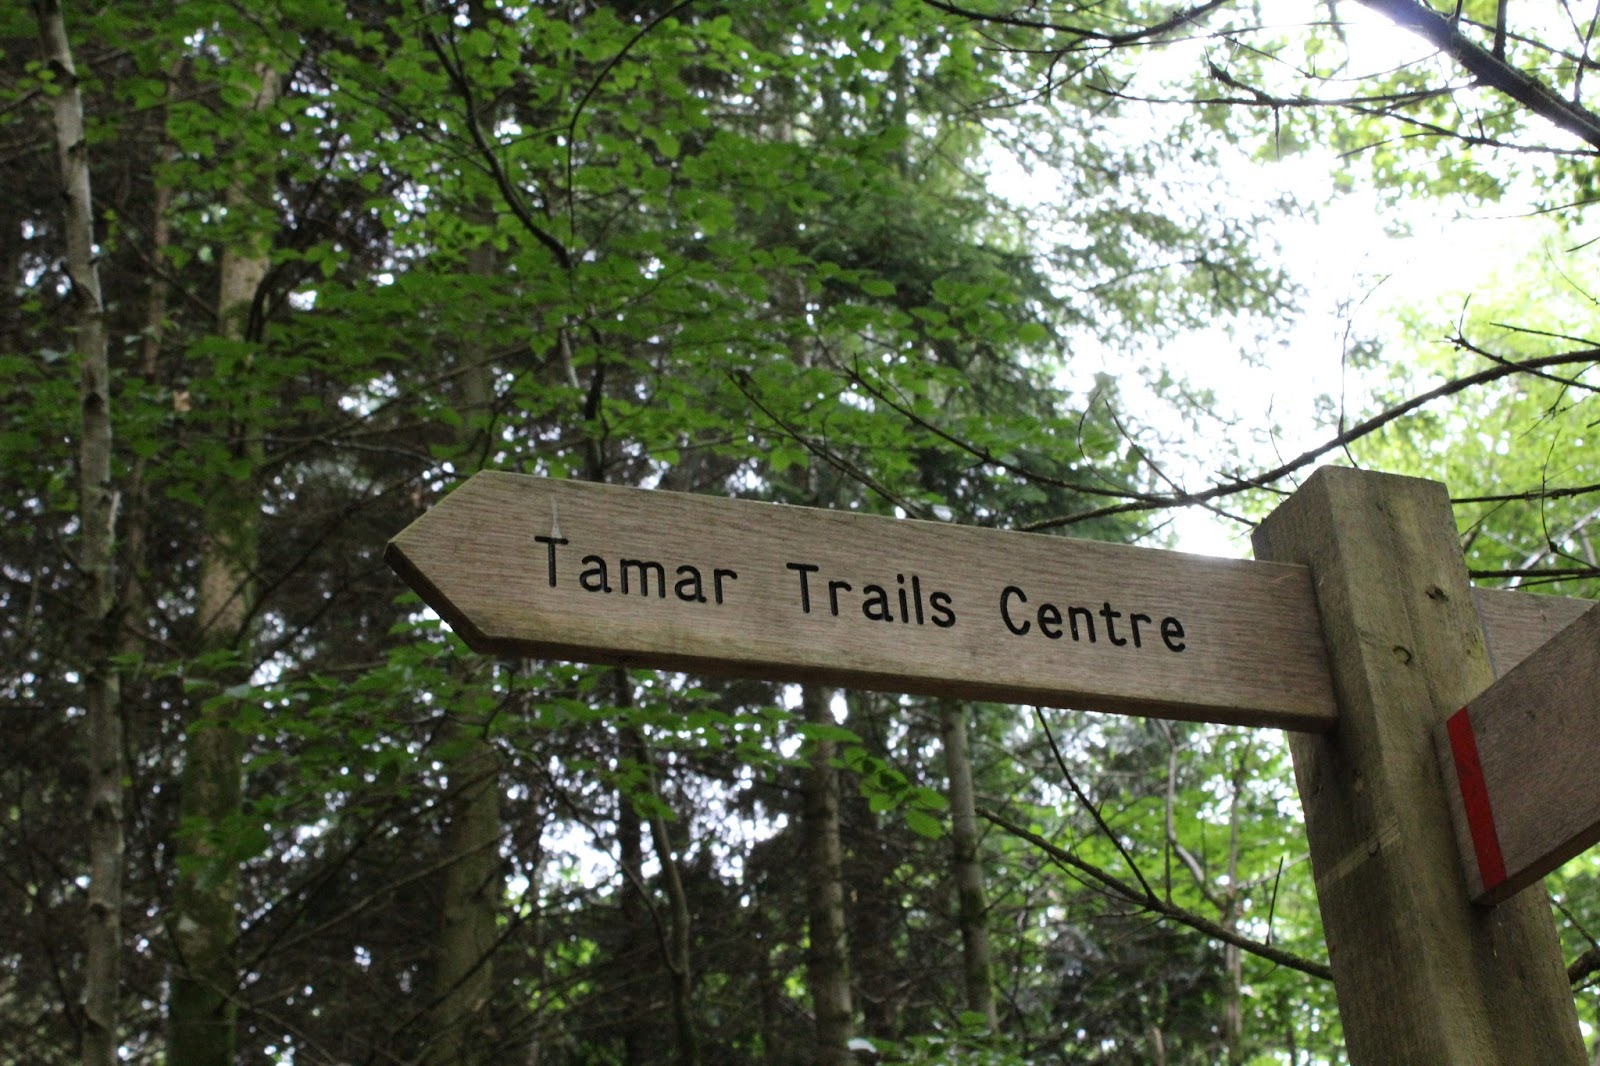 Tamar-Trails-centre